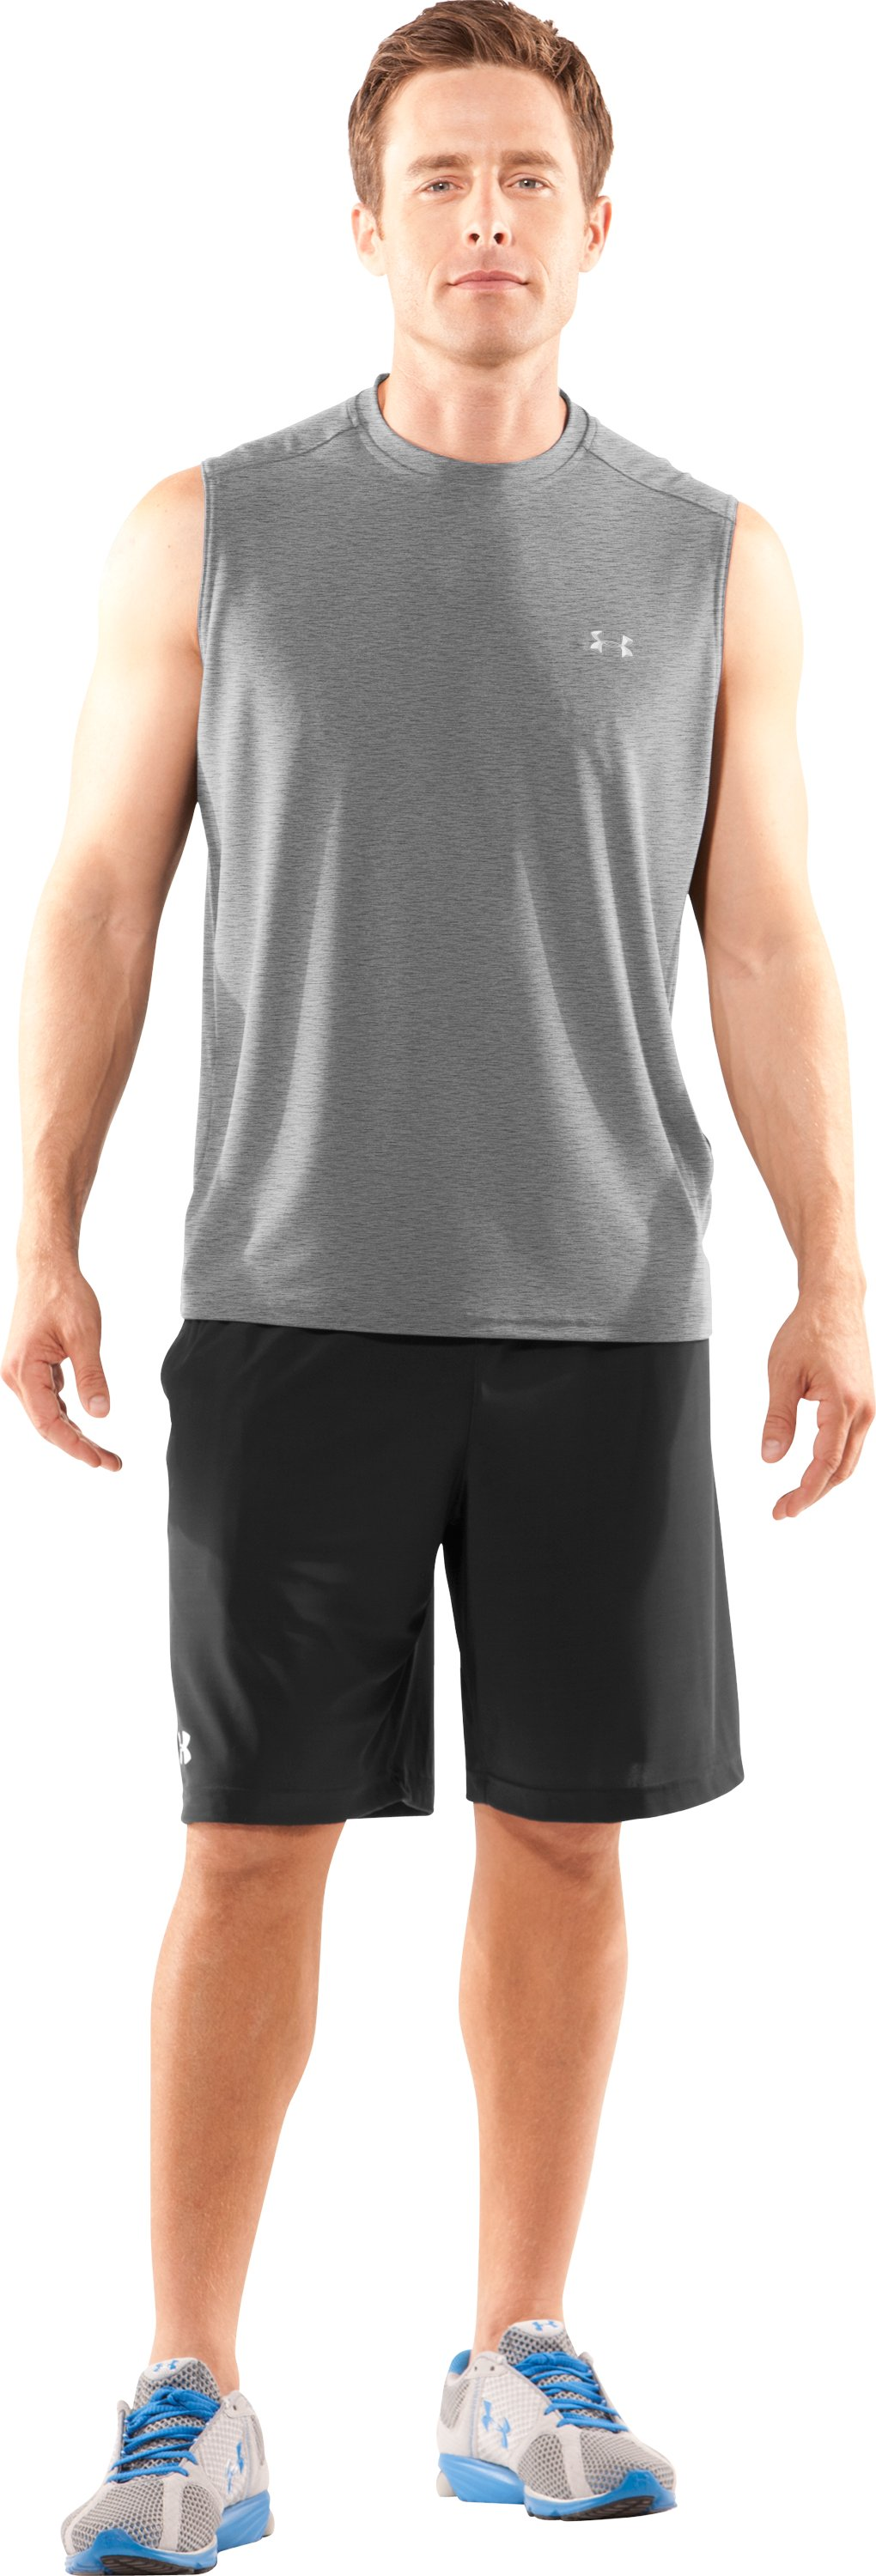 Men's TNP Sleeveless T-Shirt, True Gray Heather, Front